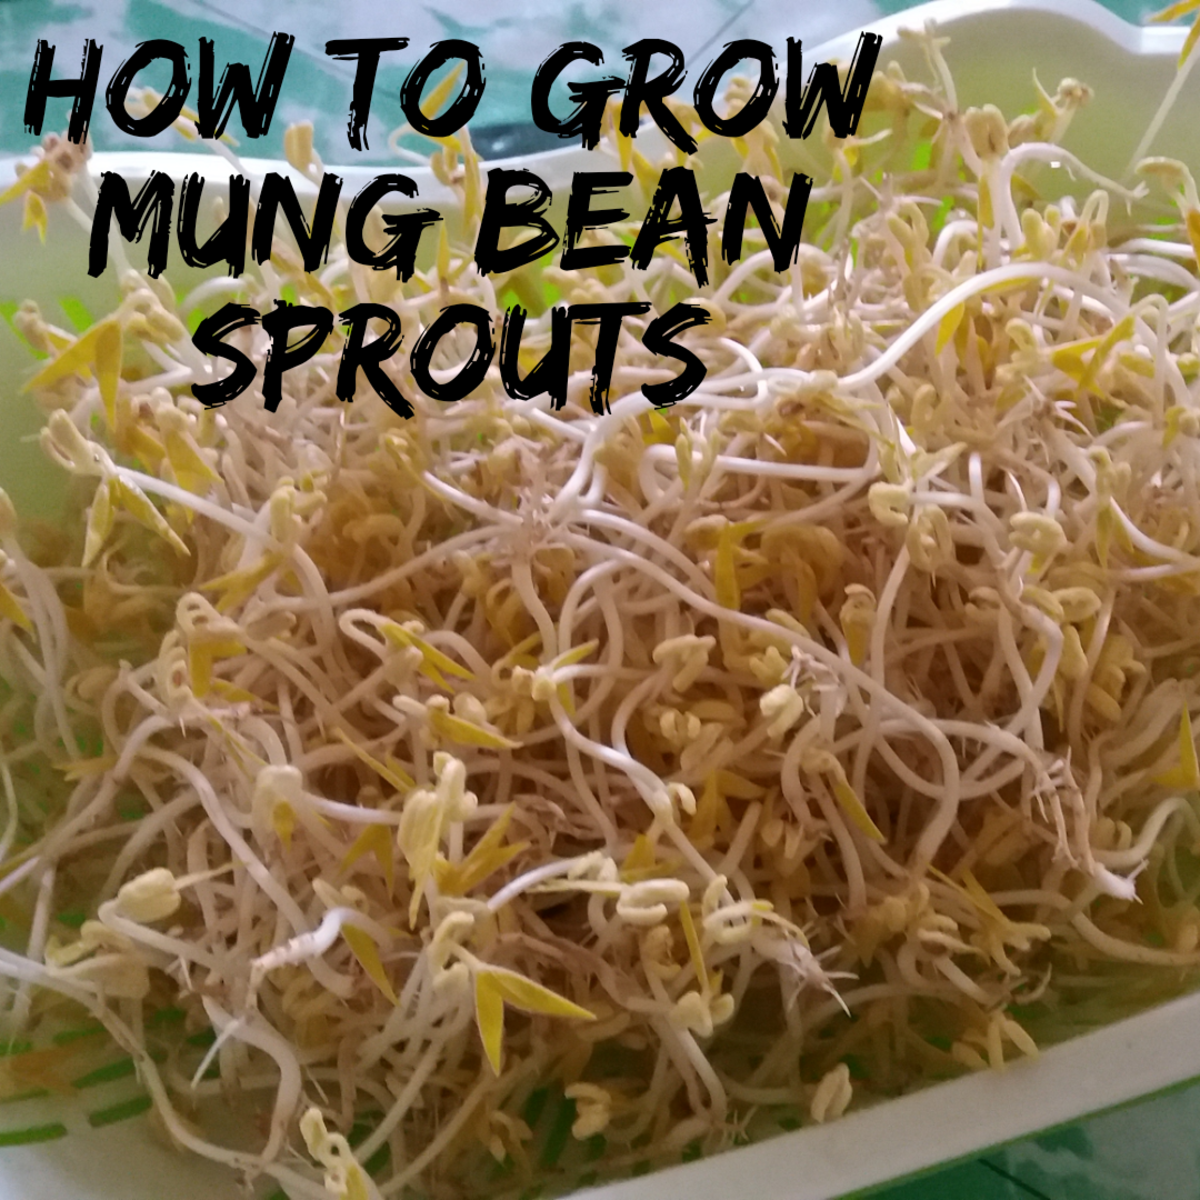 Learn how to grow mung bean spouts!